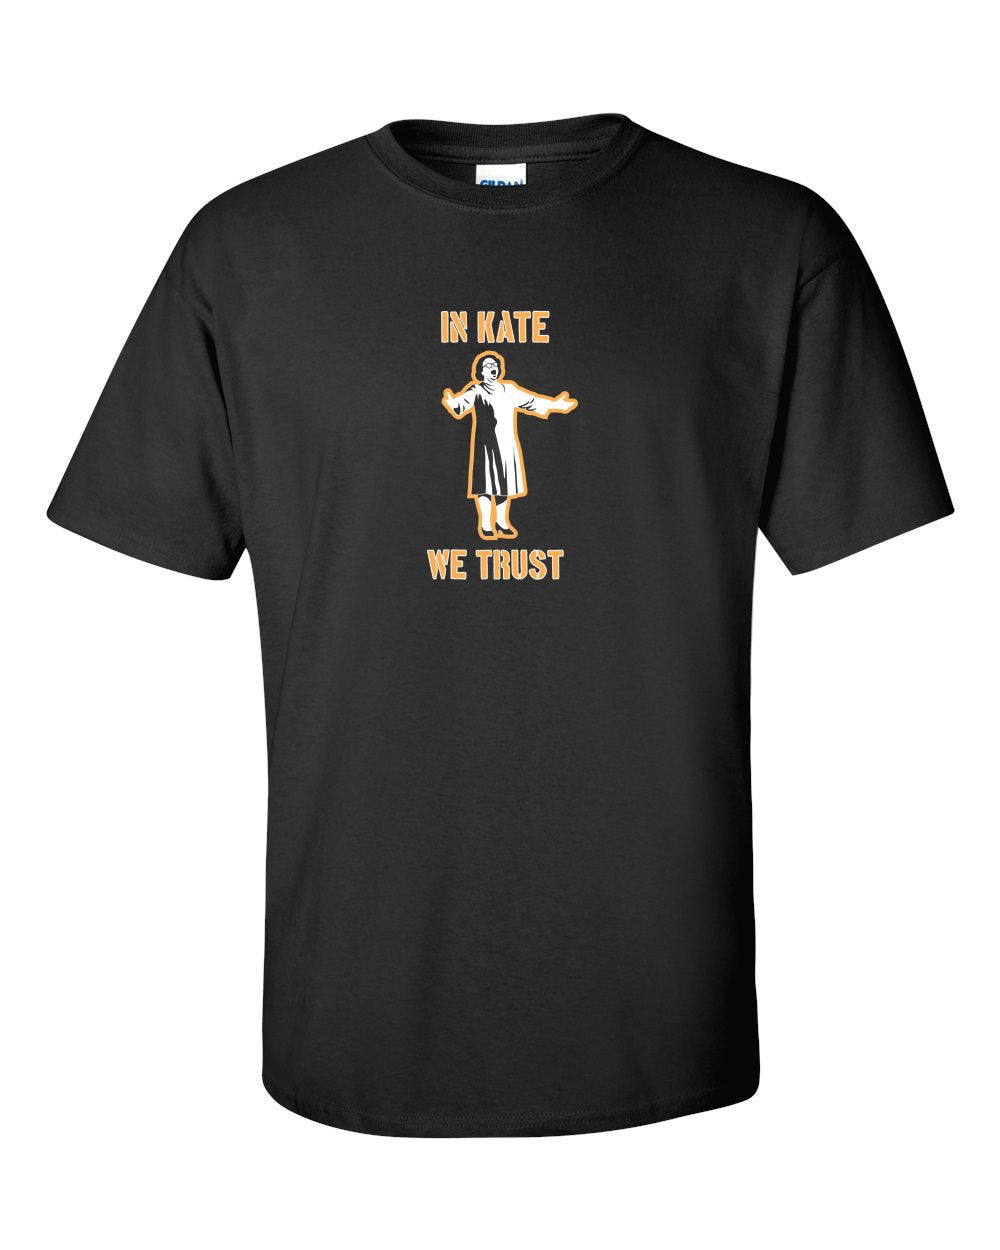 In Kate We Trust Mens/Unisex T-Shirt